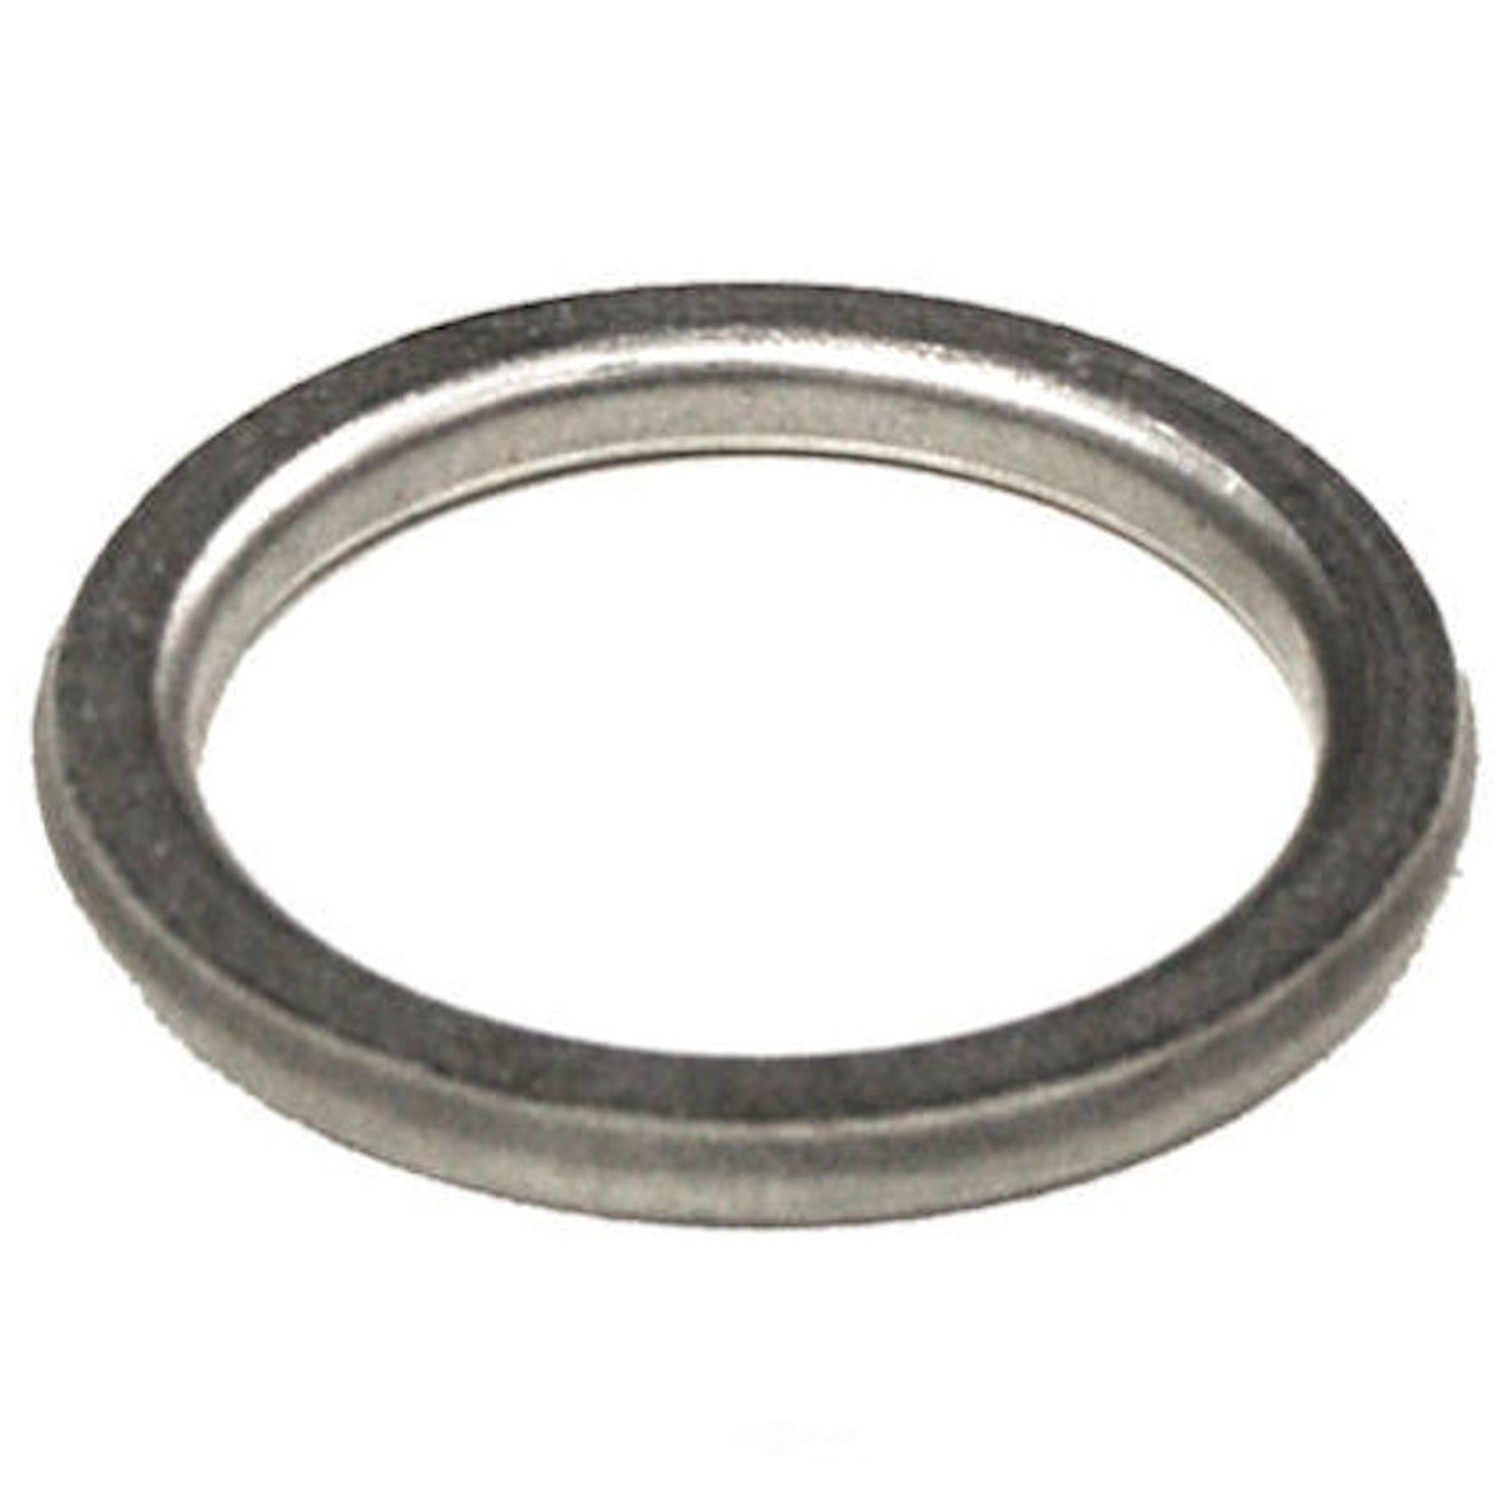 BOSAL 49 STATE CONVERTERS - Gasket (Outlet) - BSF 256-071